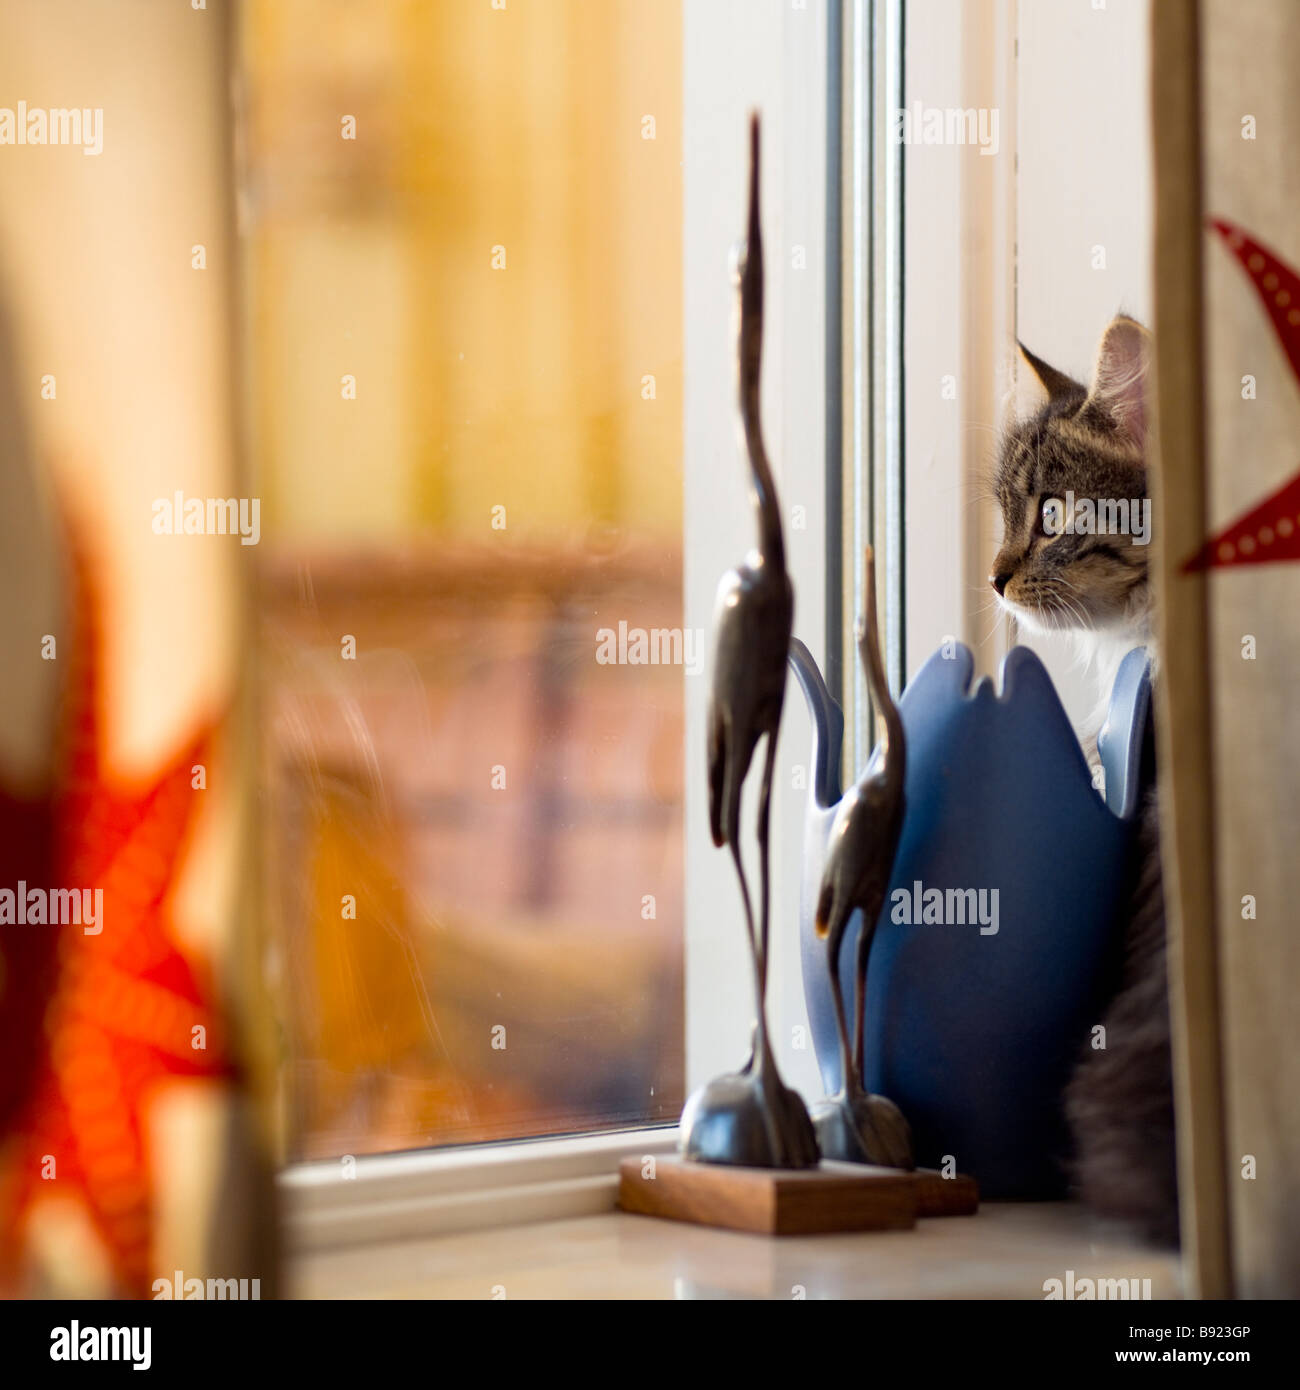 Curious cat looking out of window - Stock Image